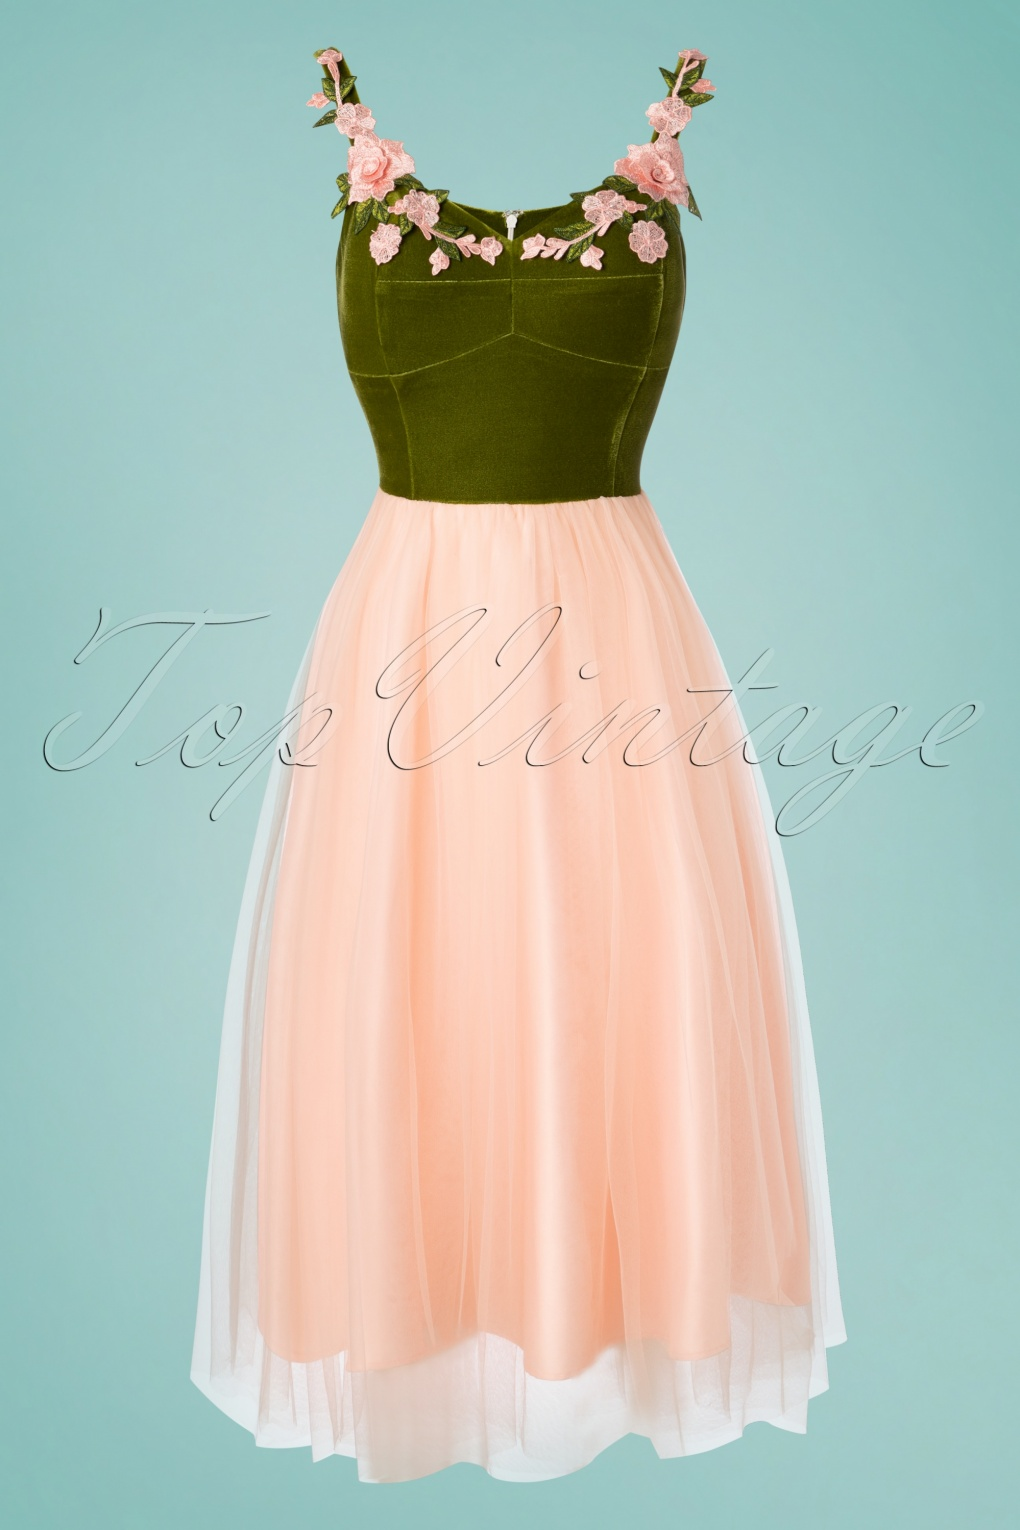 1950s Cocktail Dresses, Party Dresses 50s Josie Occasion Swing Dress in Pink and Green �108.05 AT vintagedancer.com